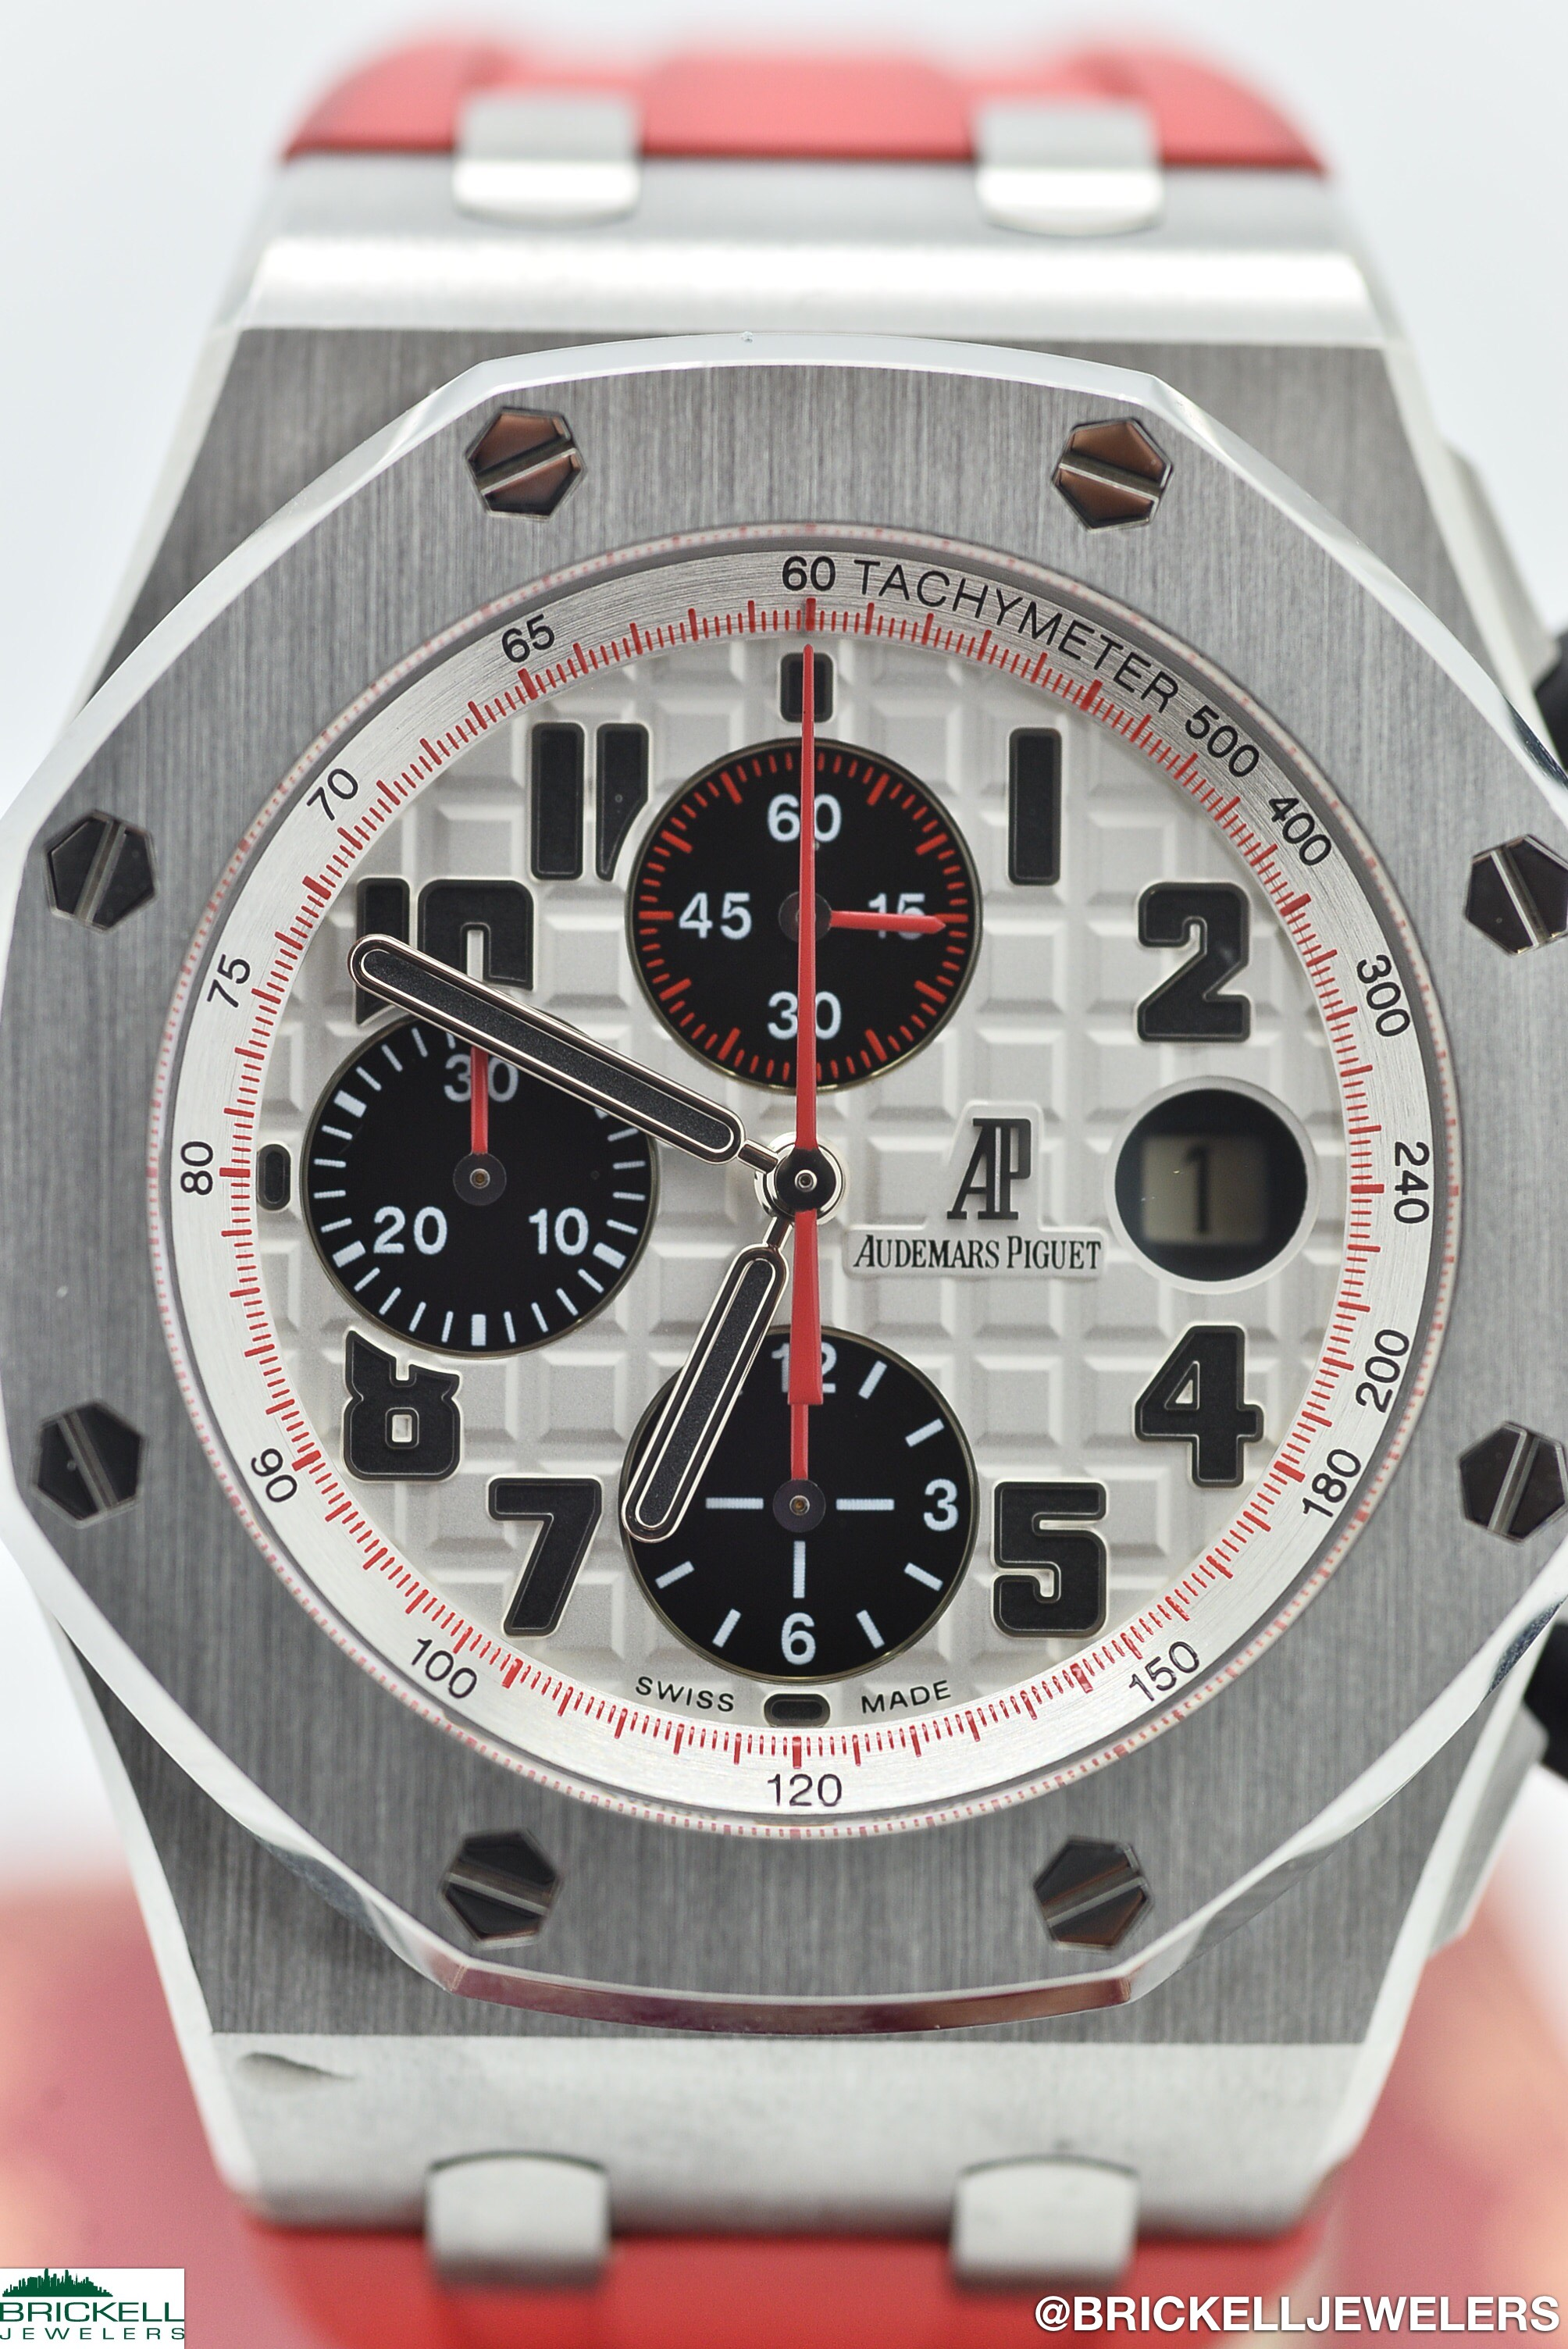 "AUDEMARS PIGUET	ROYAL OAK OFFSHORE ""PANDA""		WHITE				RED	Stainless Steel	Silicone/Rubber	42MM	Mechanical (Automatic)	WATCH"